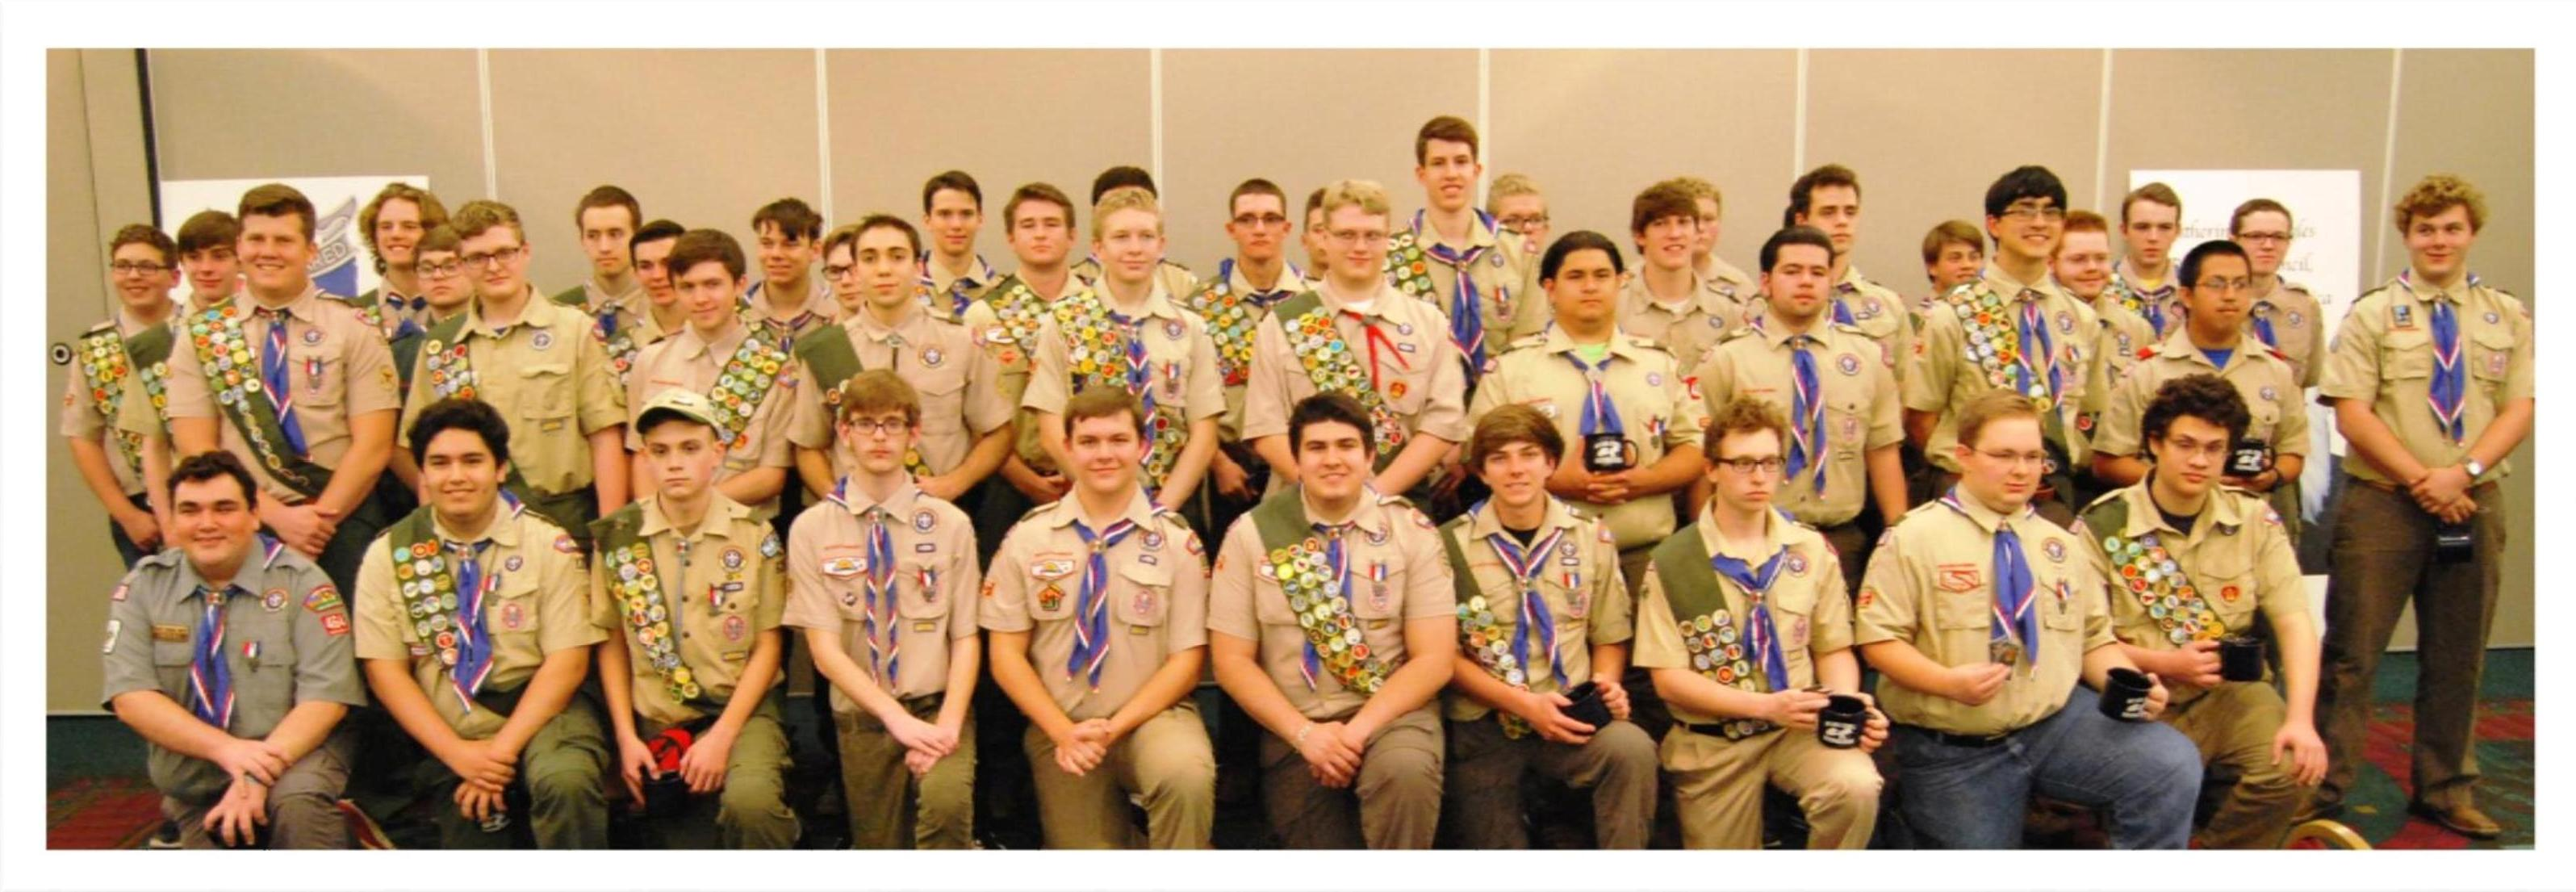 Class of 2016 Eagle Scouts